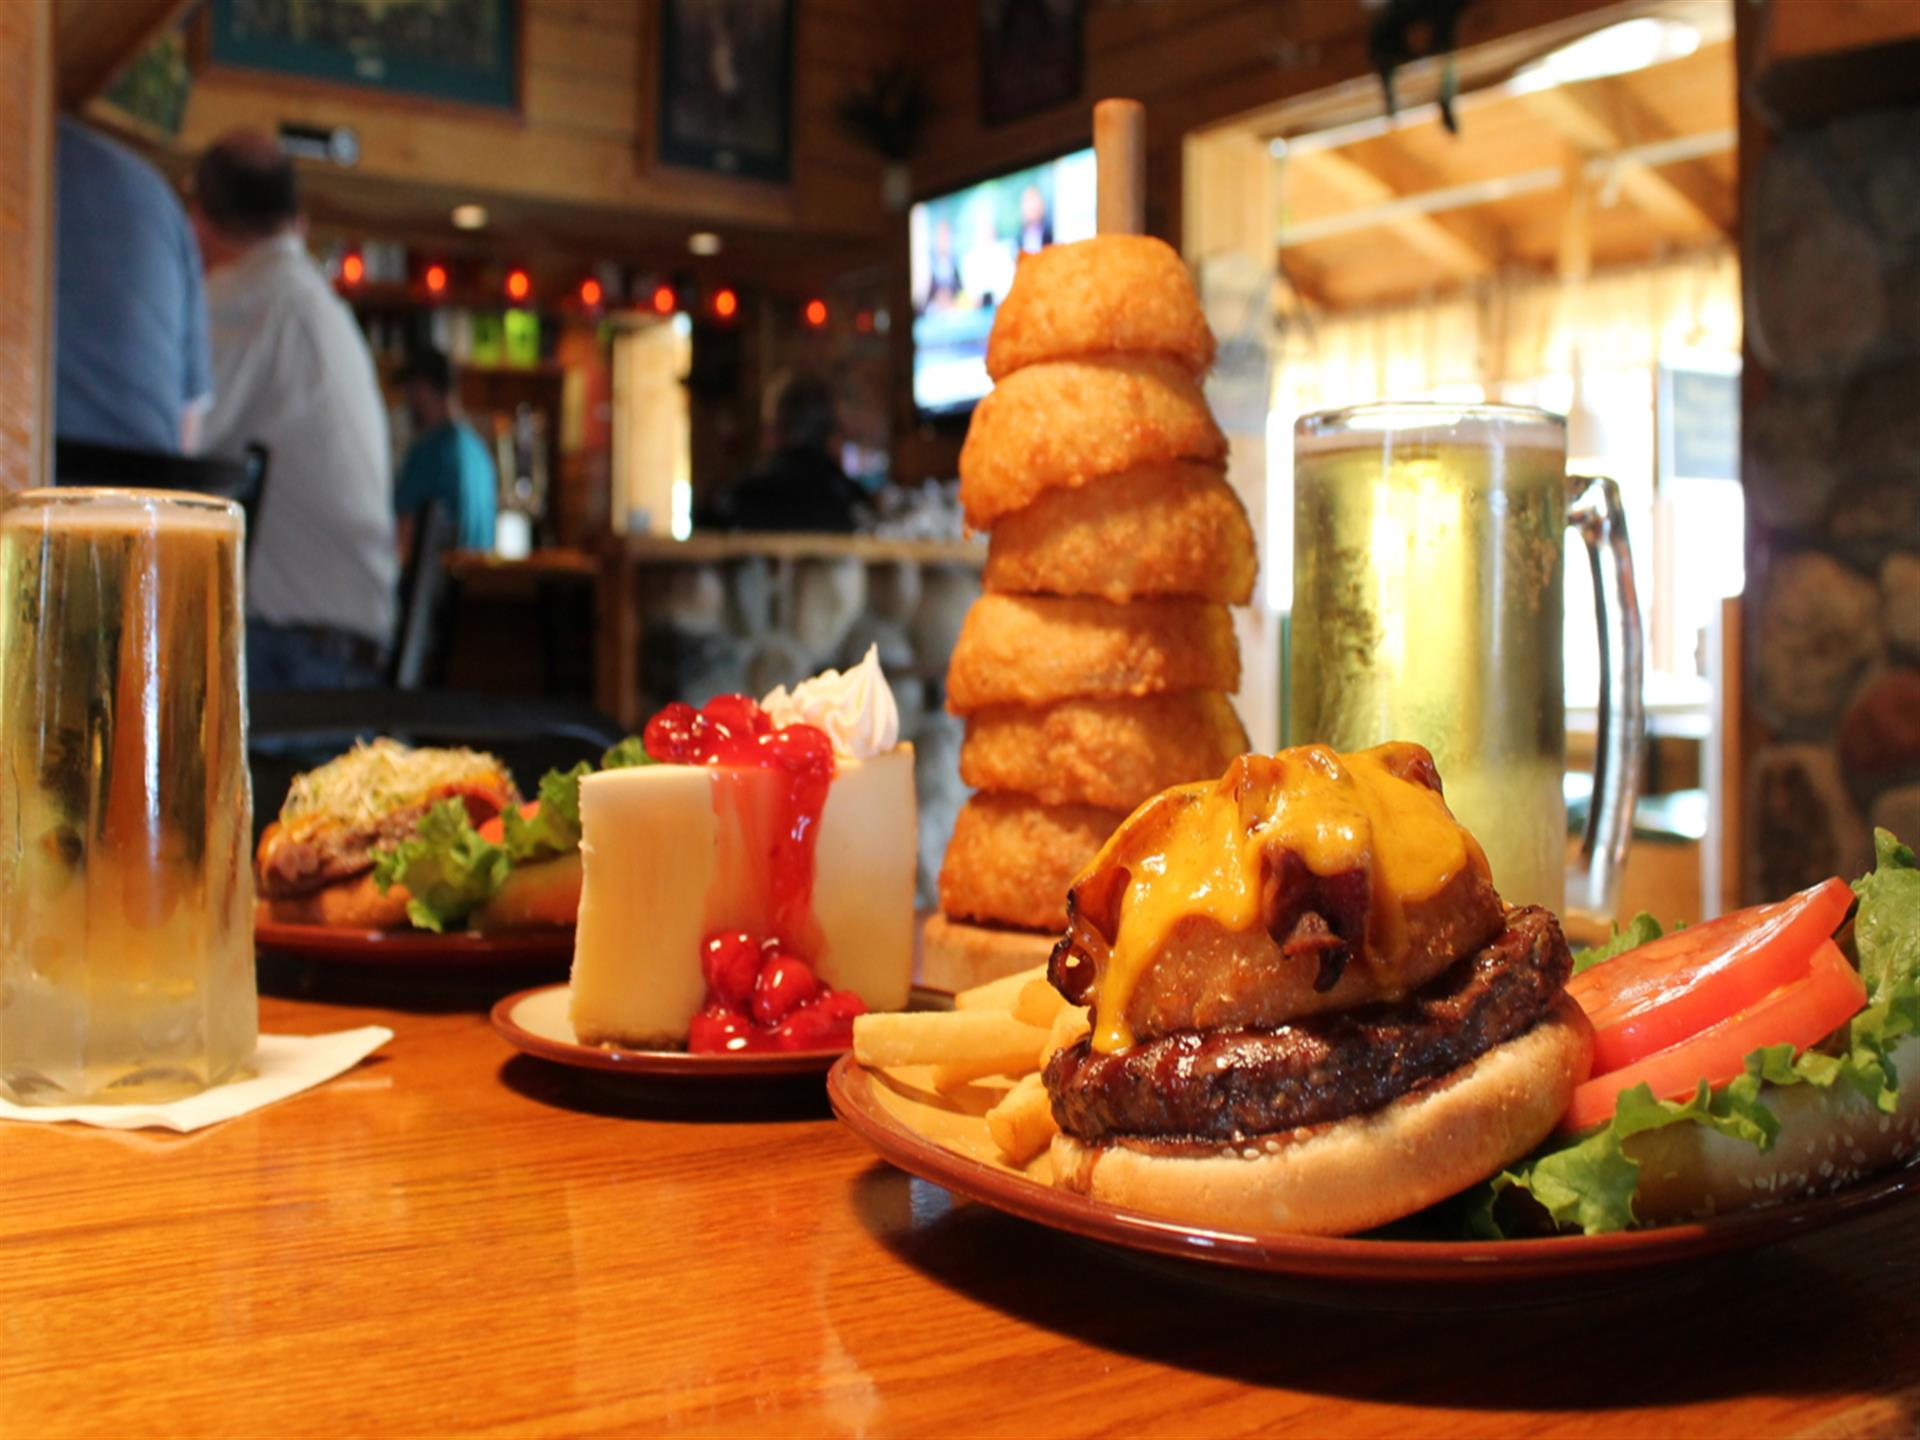 cheeseburger with lettuce, tomato, fries, onion rings, two mugs of beer and cheesecake on a table